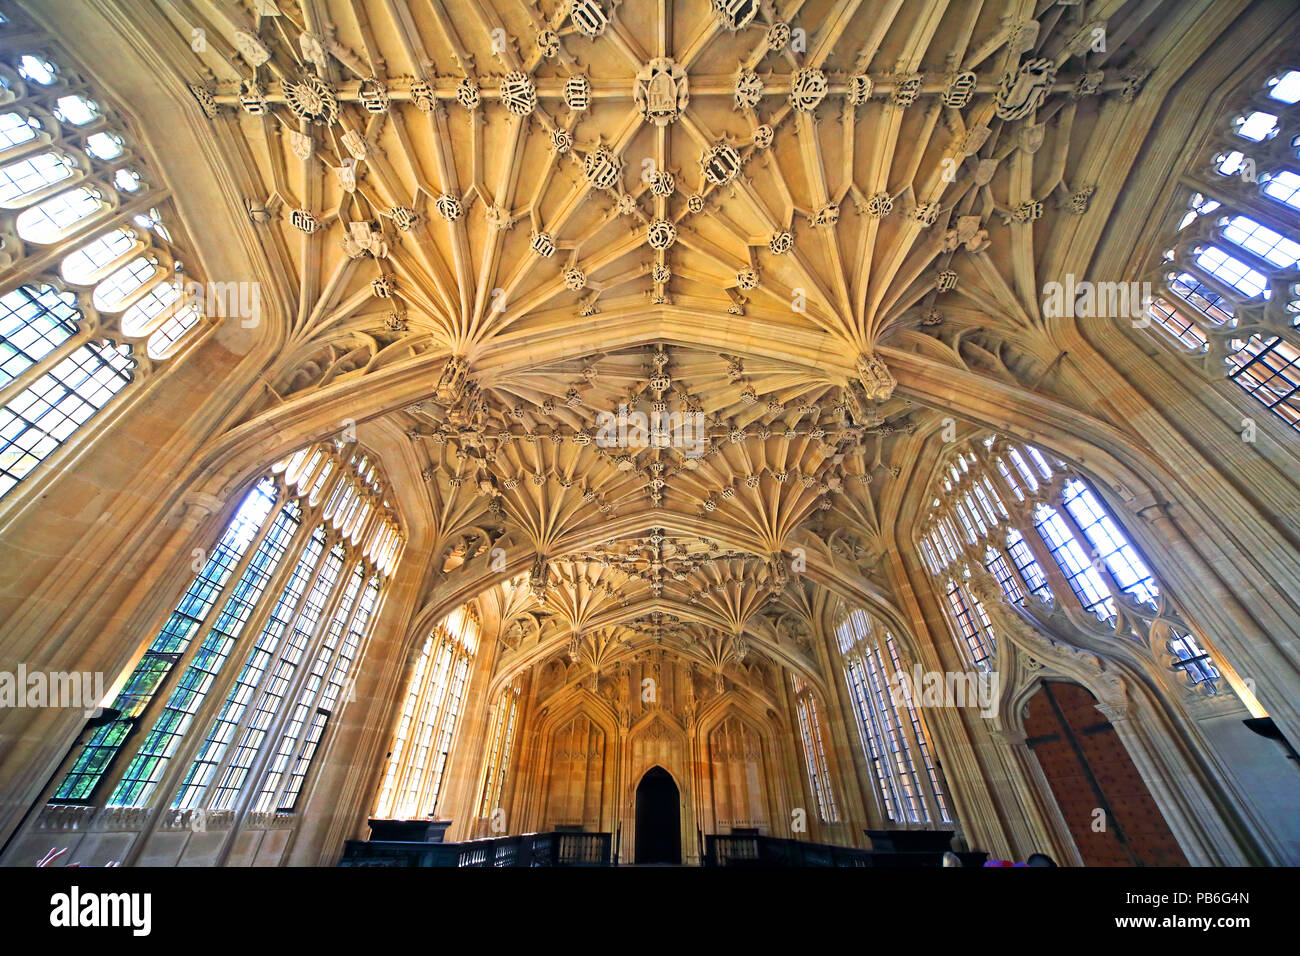 @HotpixUK,GoTonySmith,divinity,school,UK,stonework,building,interior,inside,libraries,learning,Perpendicular style,Perpendicular,style,art,arts,Oxford England,University Of Oxford,Bodleian Library,research library,Bodley,The Bod,support,supports,university,Oxford,lierne vaulting,lierne,vaulting,boss,bosses,William Orchard,architect,door,chamber,Divinity School ceiling,windows